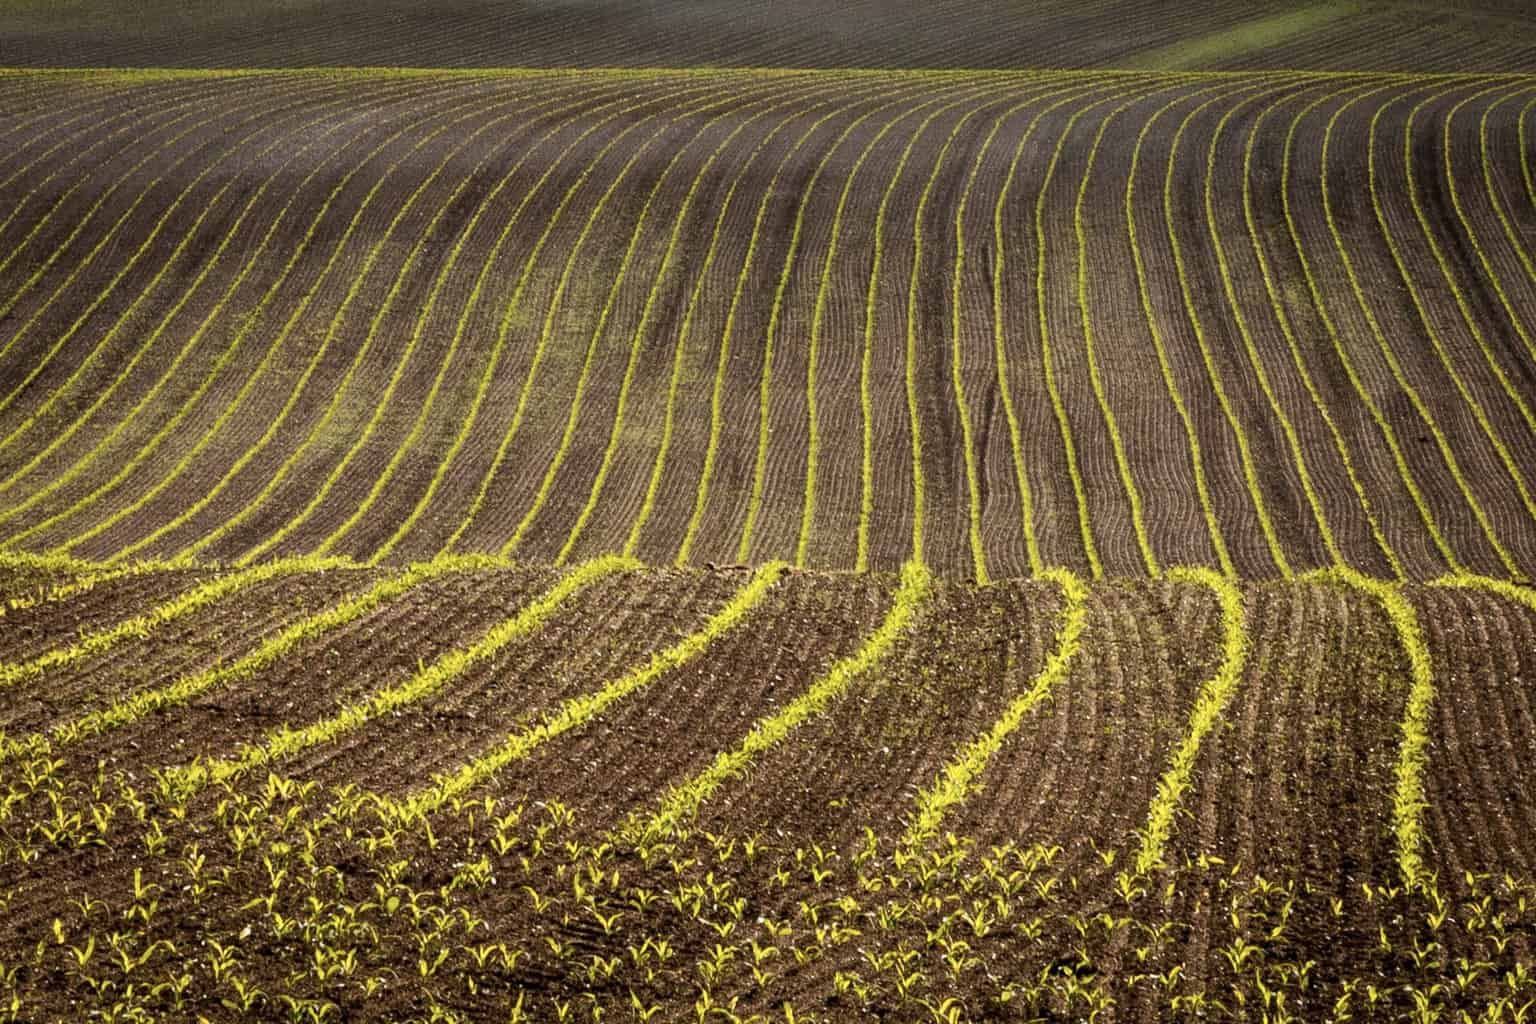 Crop of the picture of a field at sunrise by Rick McEvoy - landscape photography in Dorset